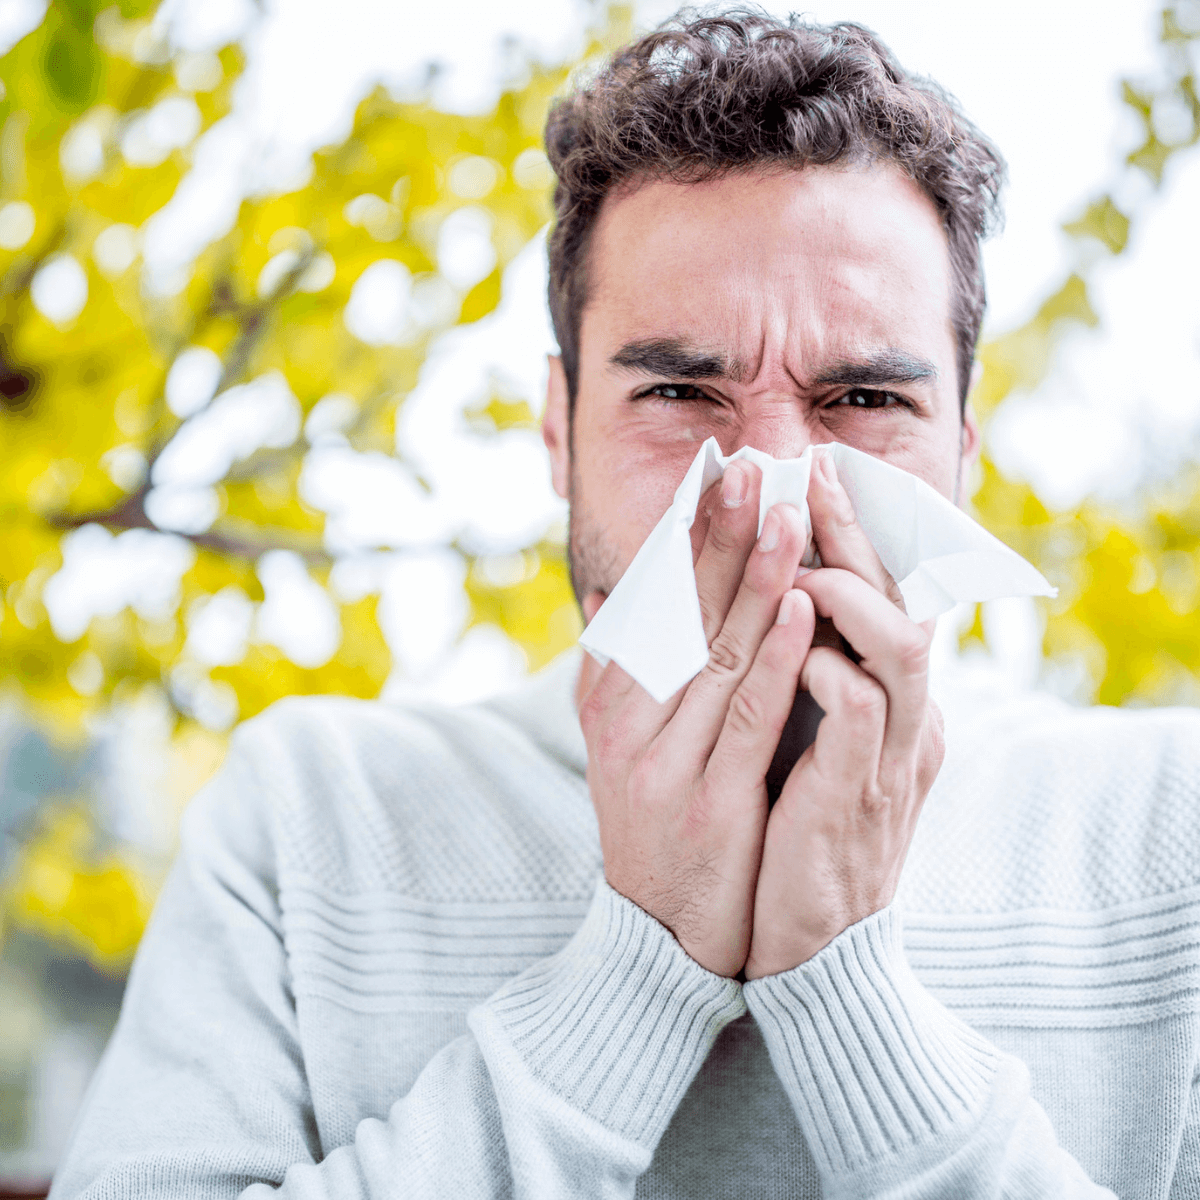 Naturalpractitionermag.com: Fighting Cold & Flu Season With Natural Remedies